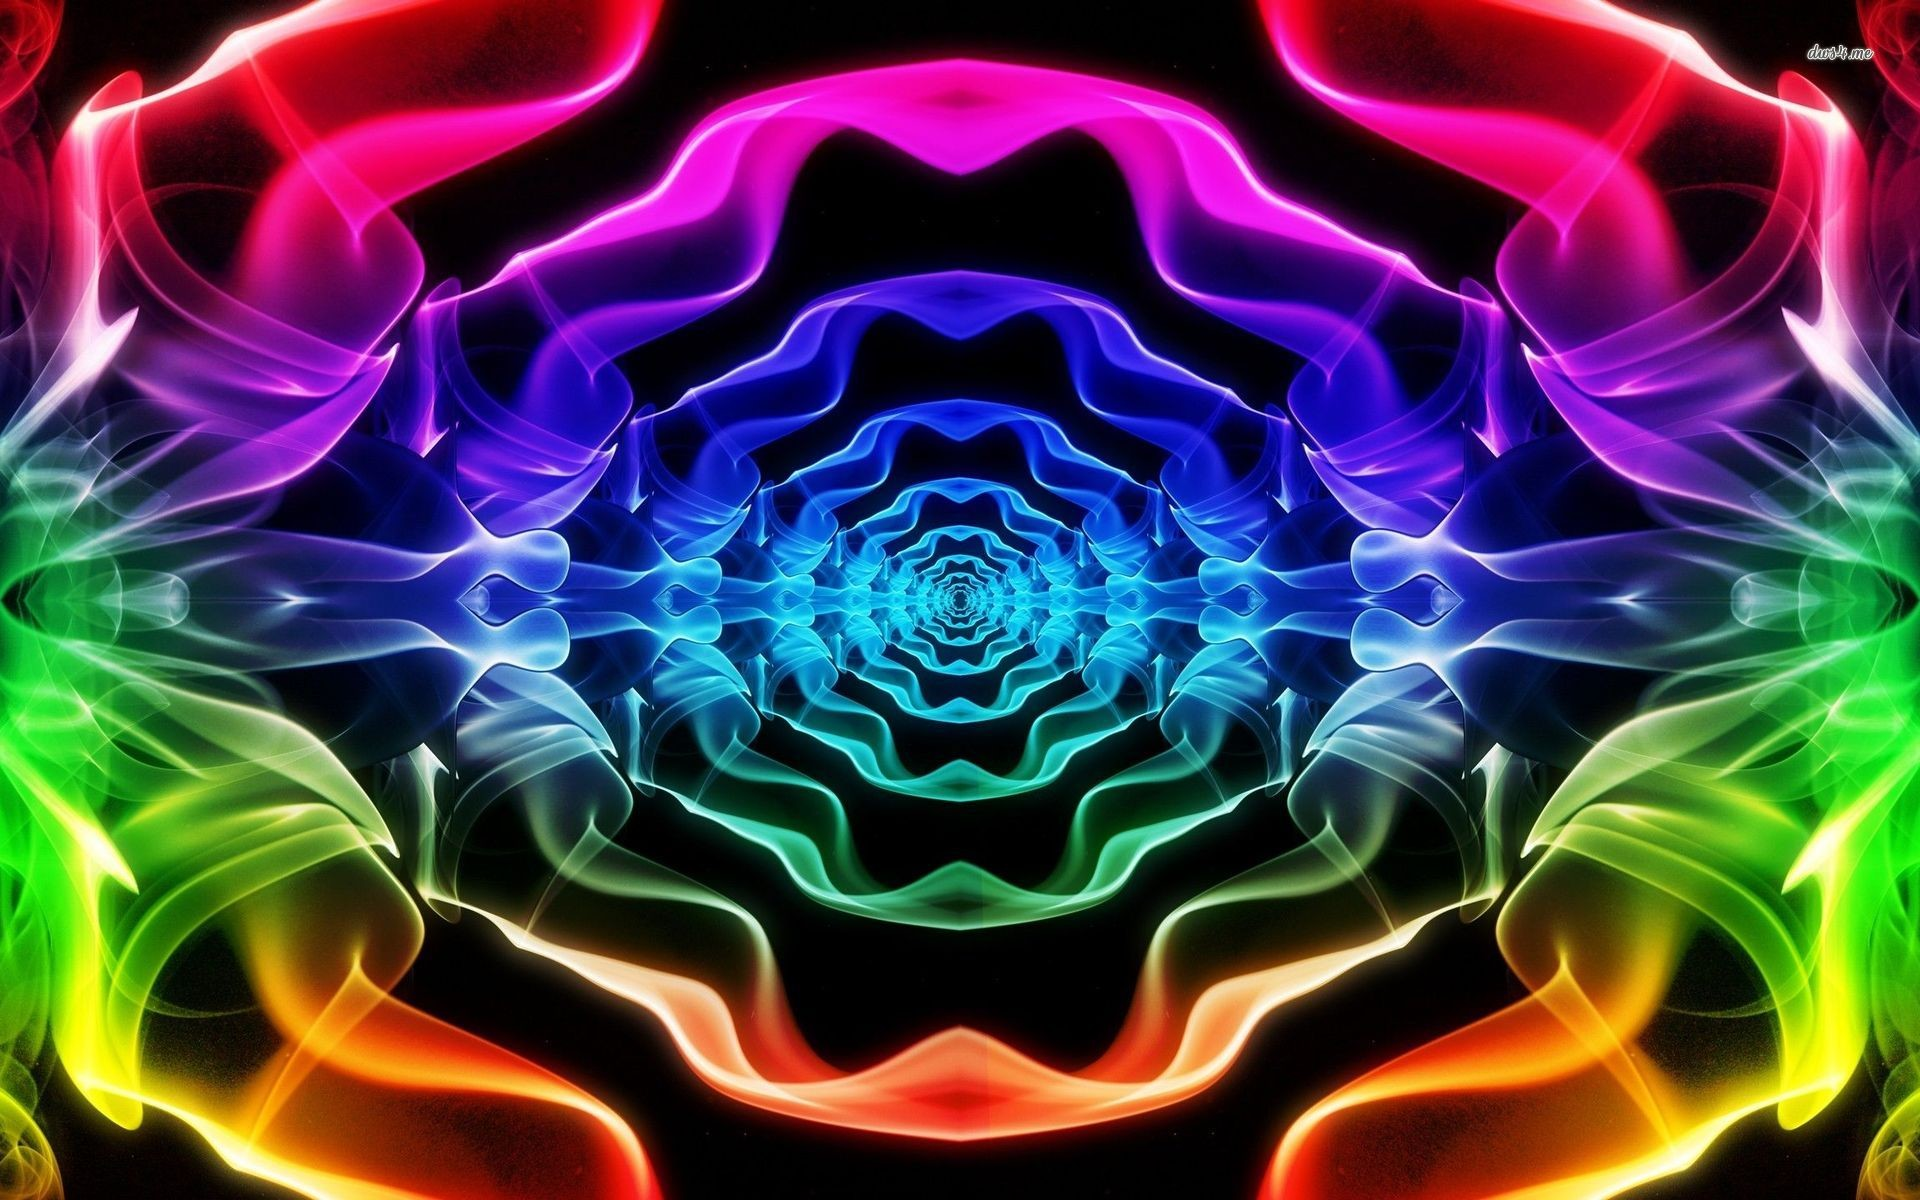 Trippy Smoke Backgrounds Tumblr 67 Images